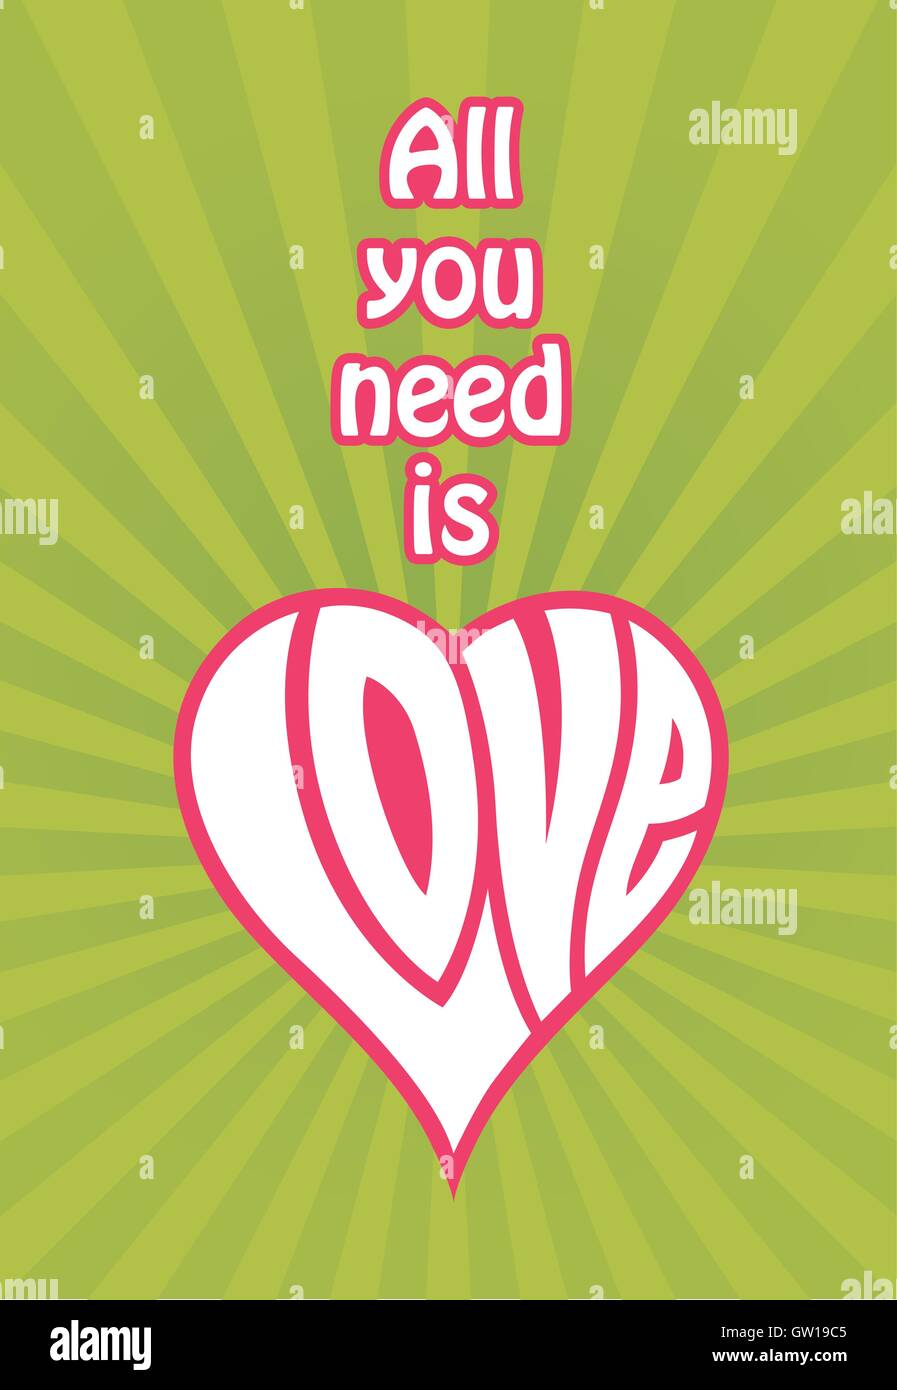 All You Need Is Love vector design. Heart shape made with custom letters spelling the word LOVE. Retro radial groovy background. Valentine's Day. Stock Vector